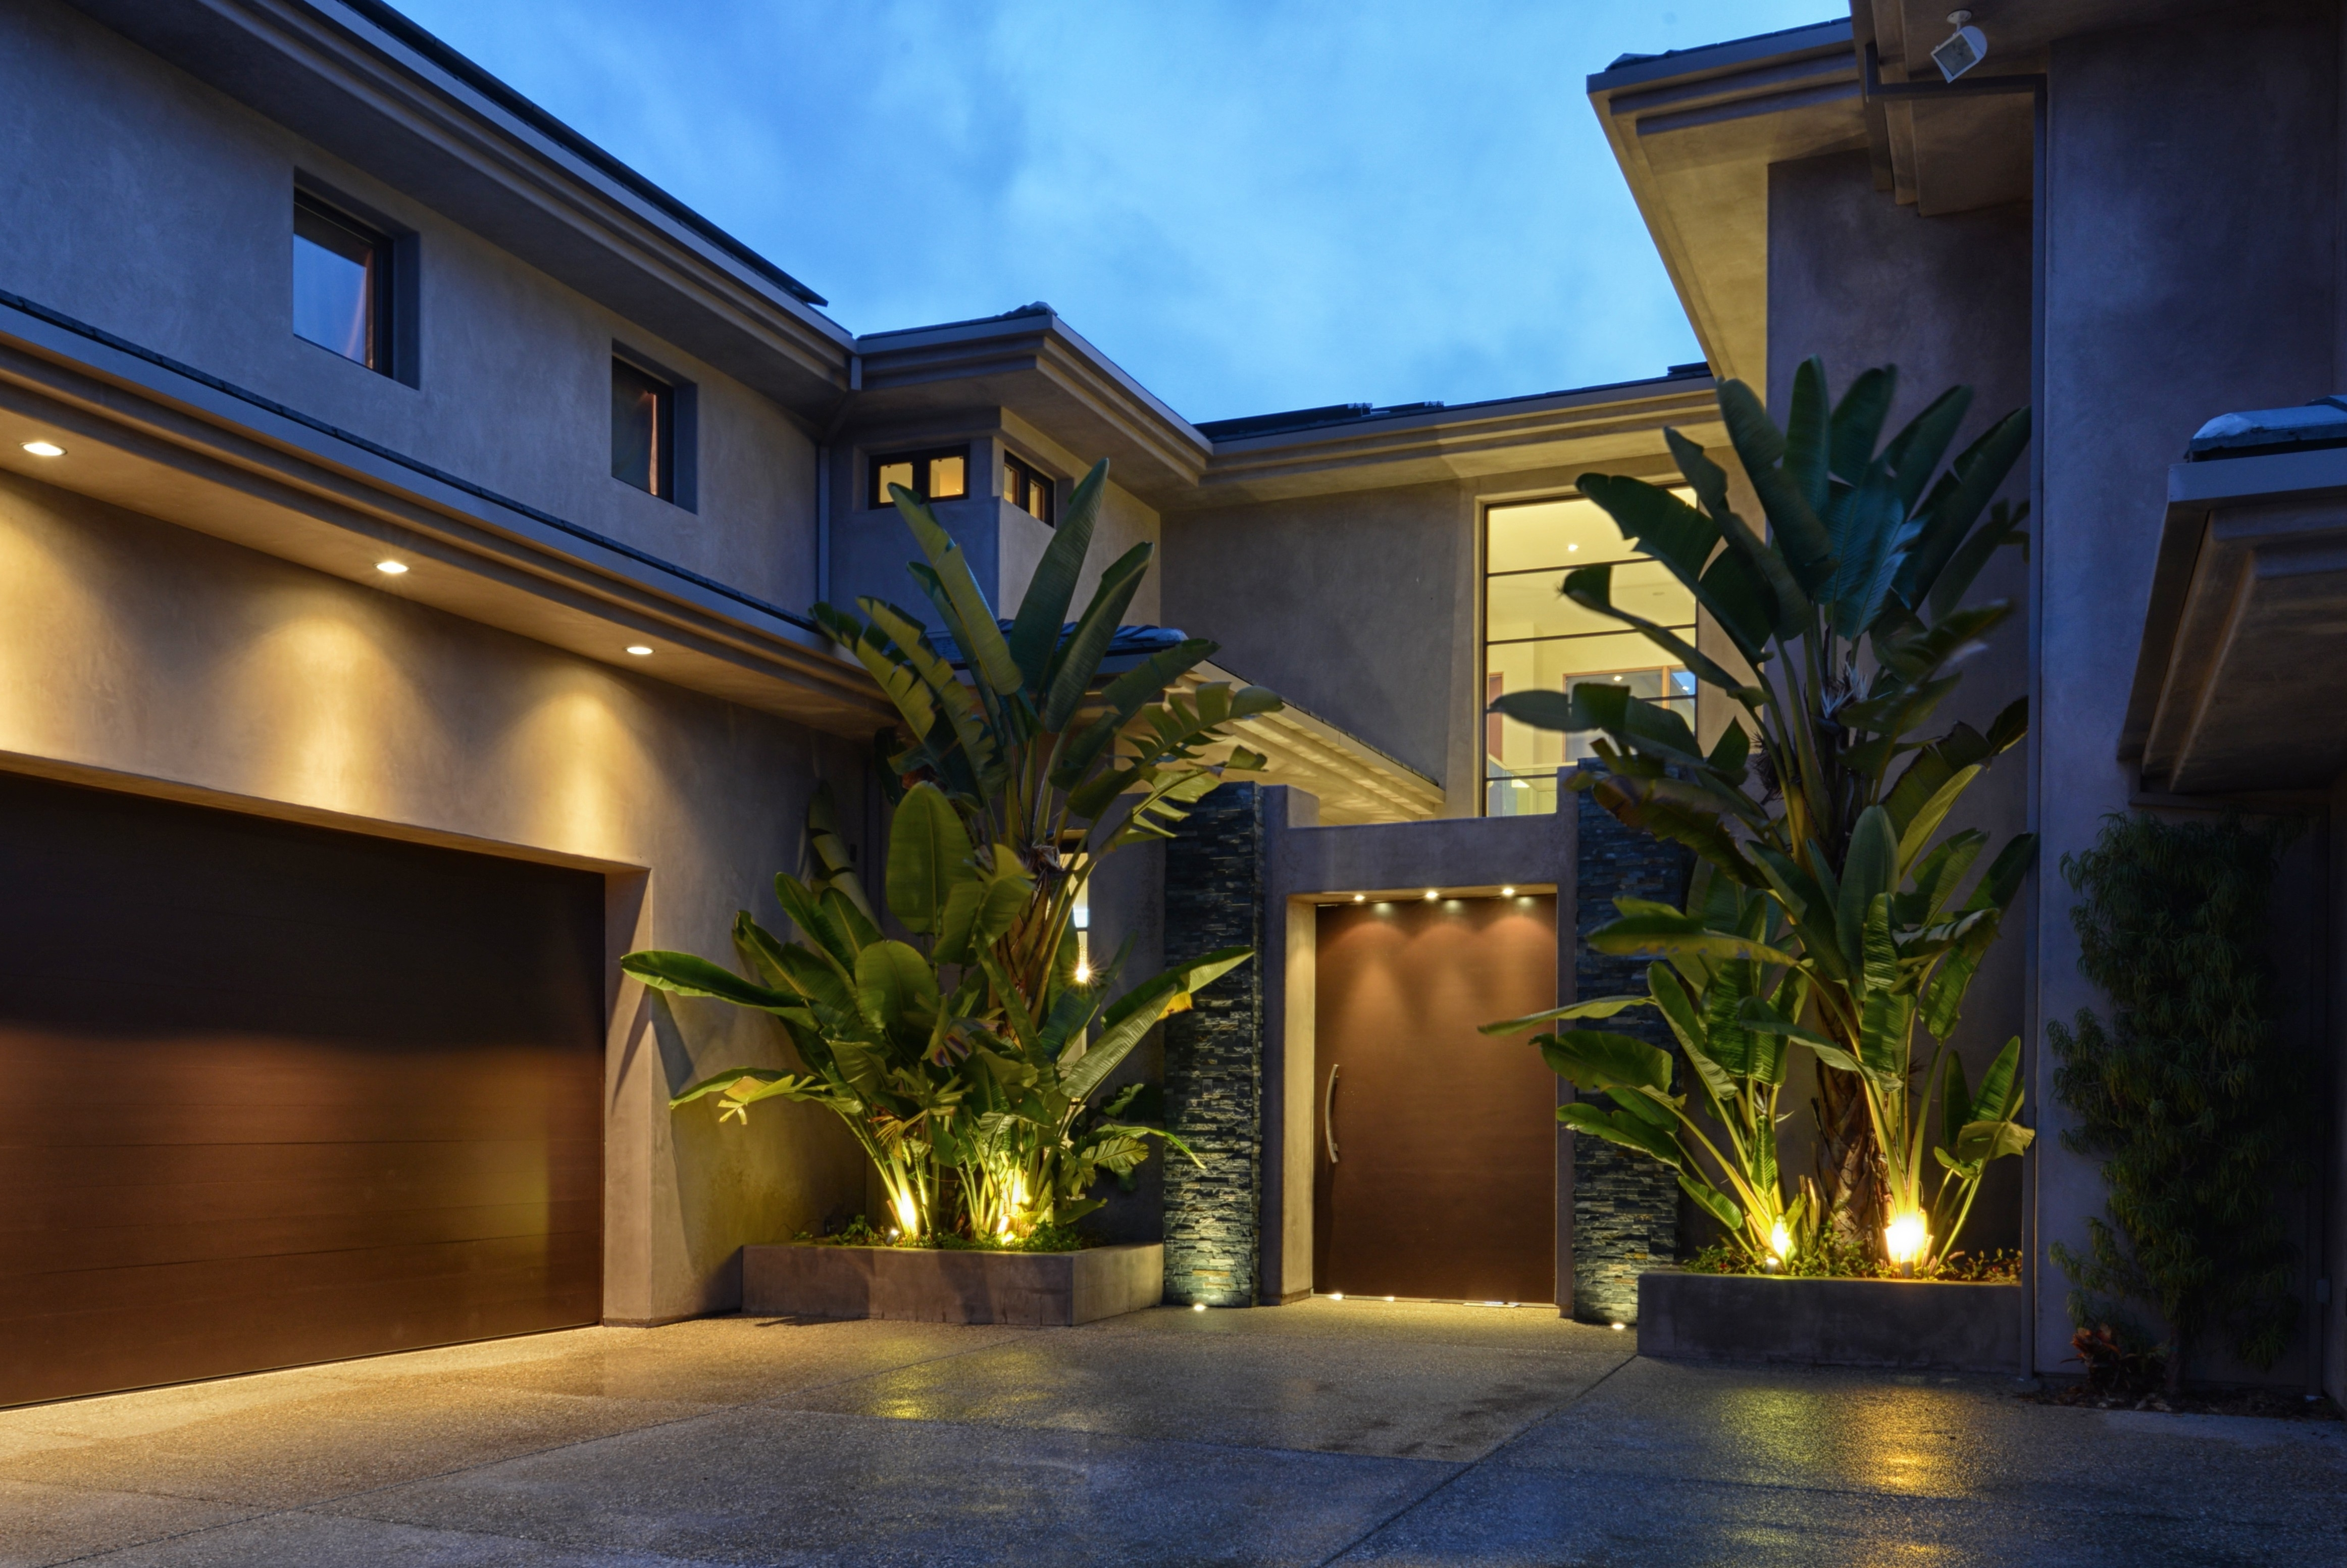 Outdoor Garage Lanterns Throughout Recent Outdoor Home Lighting Fixtures Patio Amazing Paper Lanterns For (View 14 of 20)